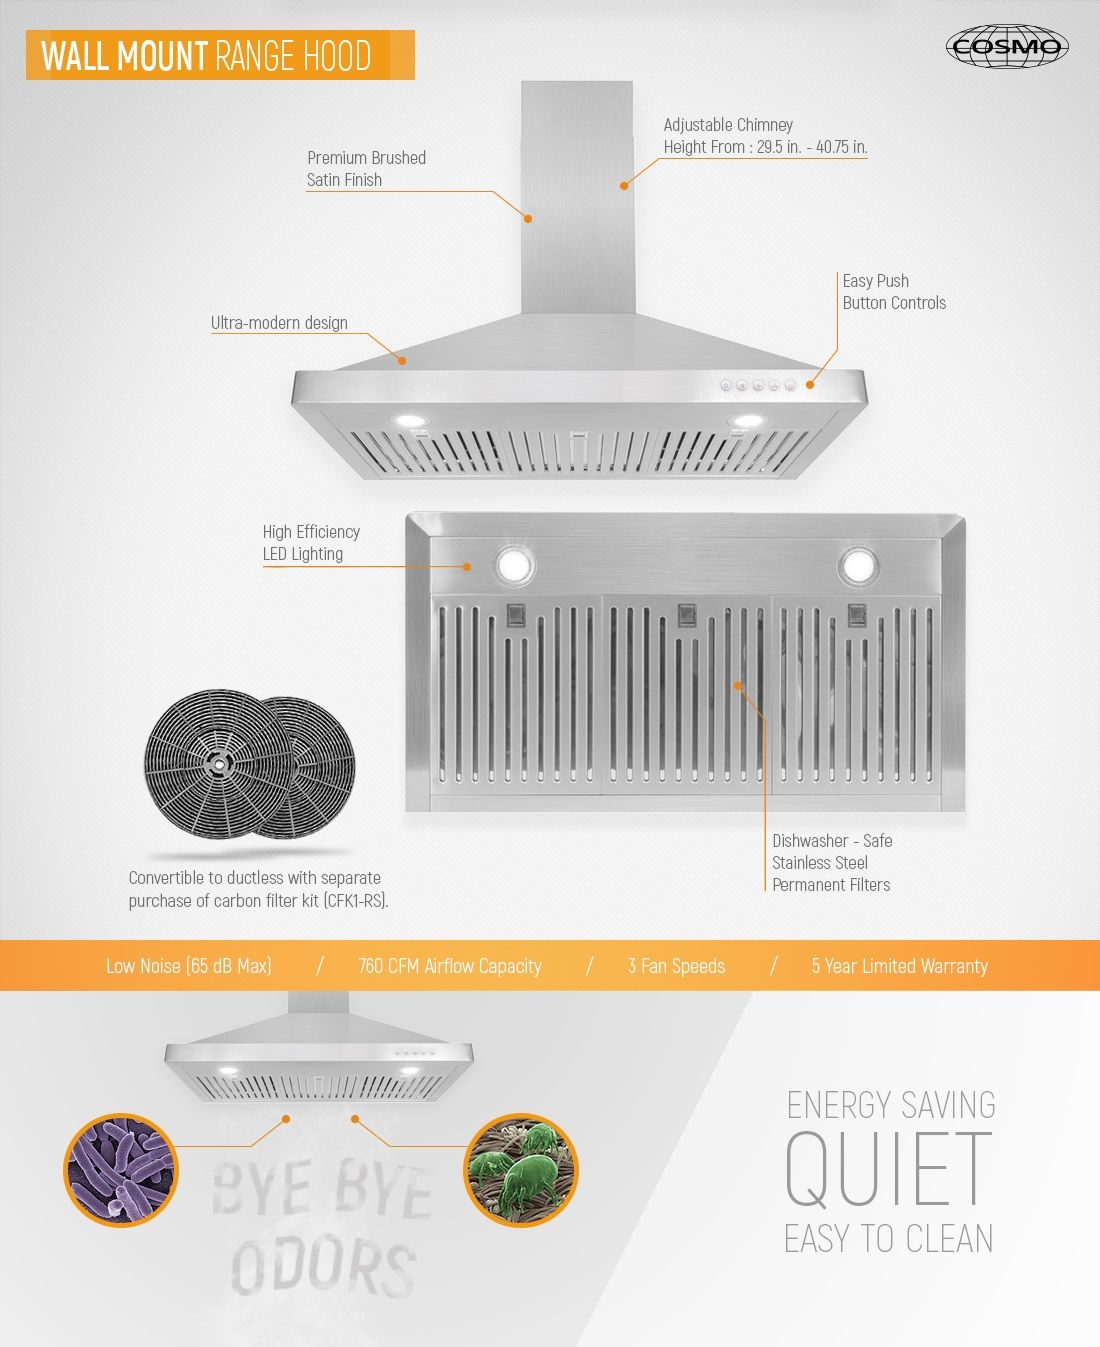 192 00 Cosmo 36 In Ducted Wall Mount Range Hood In Stainless Steel With Led Lighting And Permanent Filters Wall Mount Range Hood Range Hood Ducted Range Hood